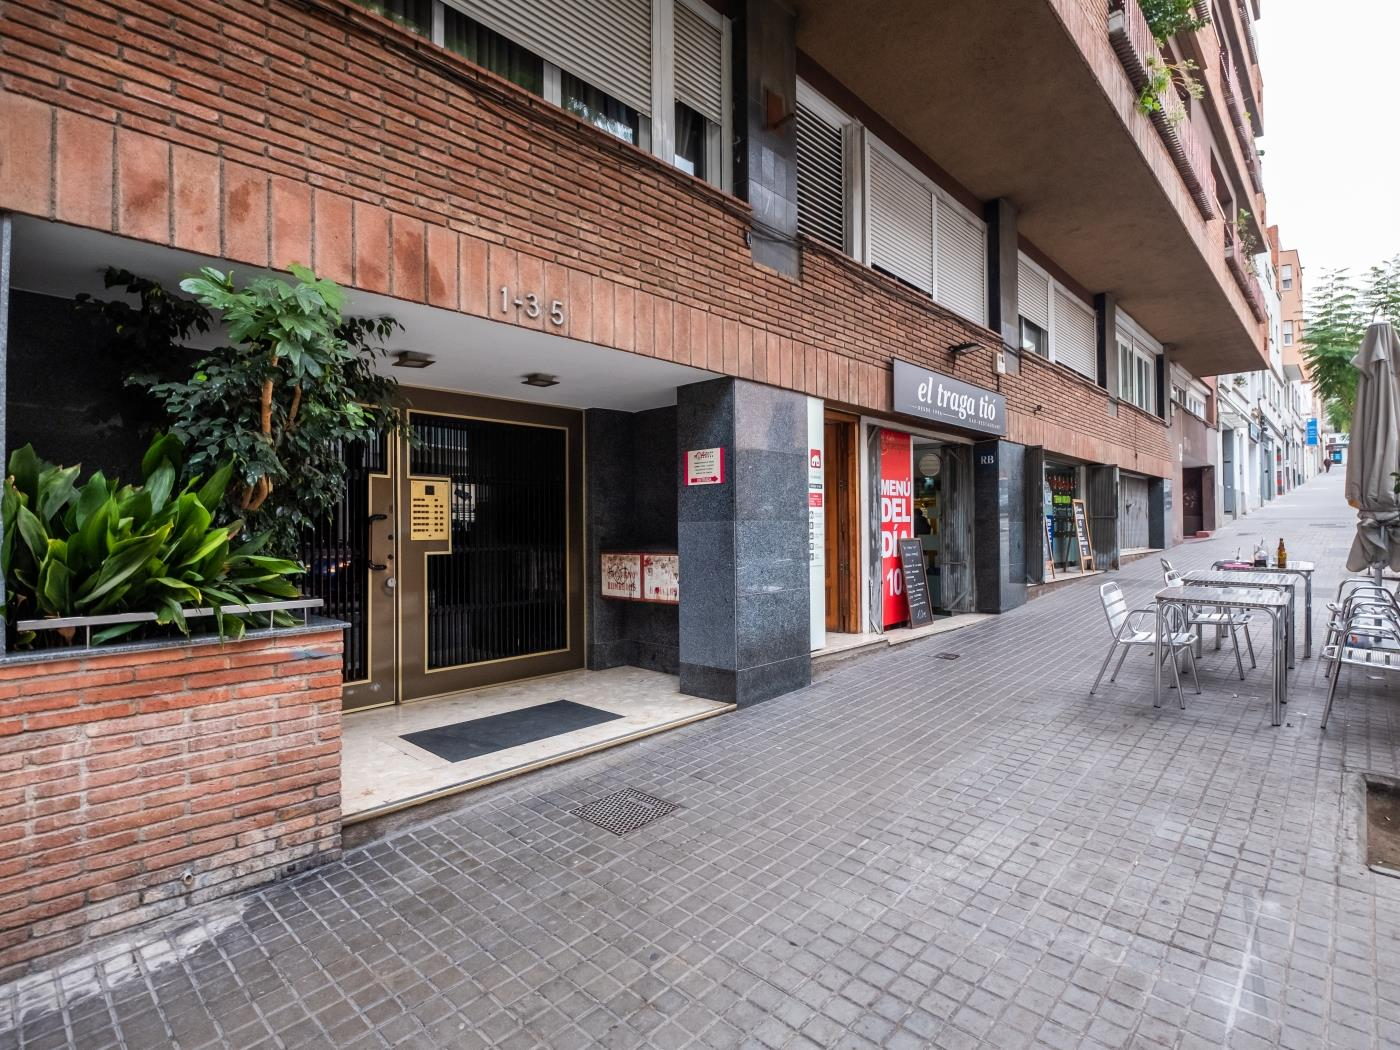 Apartment for groups near the city centre of Barcelona 6 - My Space Barcelona Apartments